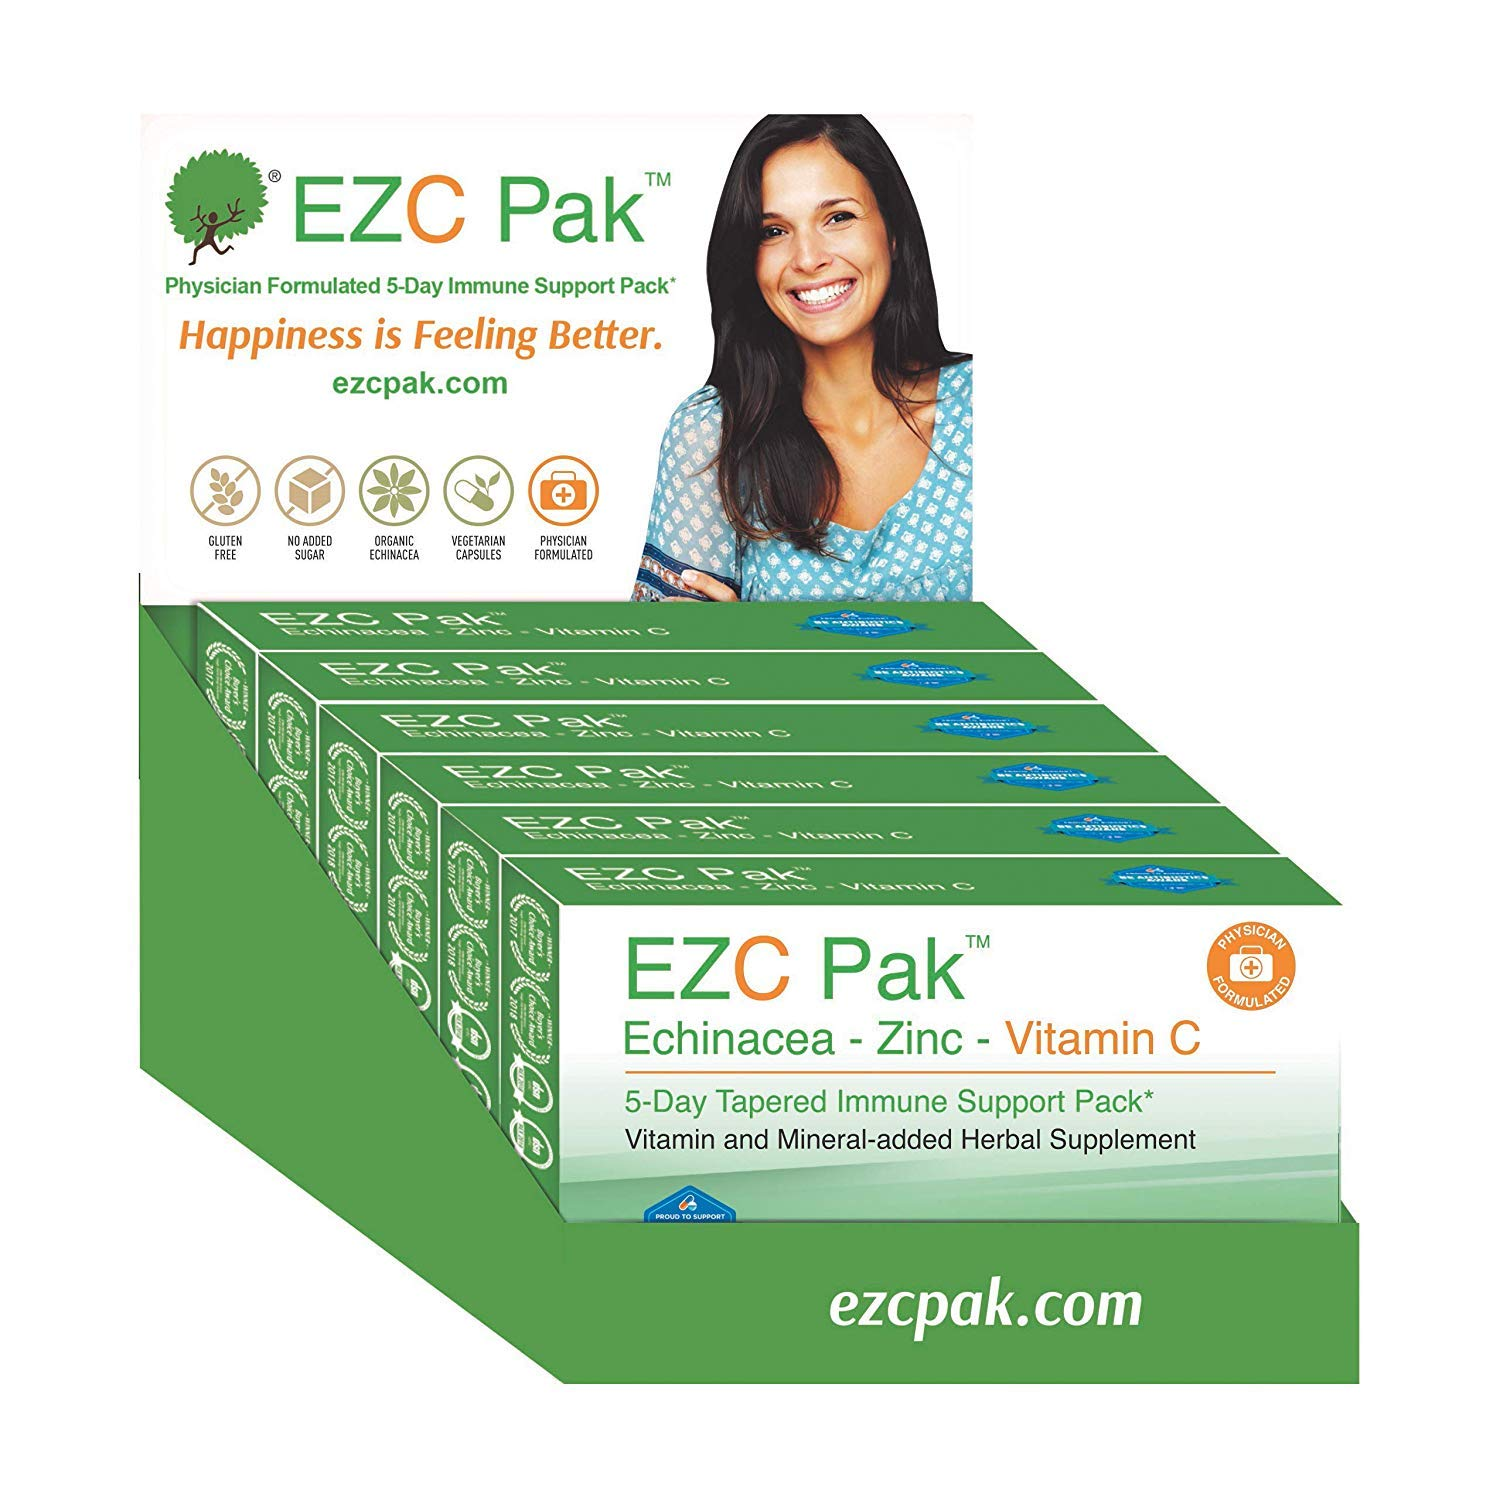 EZC Pak 5-Day Immune System Booster for Cold and Flu Relief (Pack of 6) - Echinacea, Zinc, and Vitamin C, Physician Directed 5-Day Tapered Immune Support Dose Pack by EZC Pak